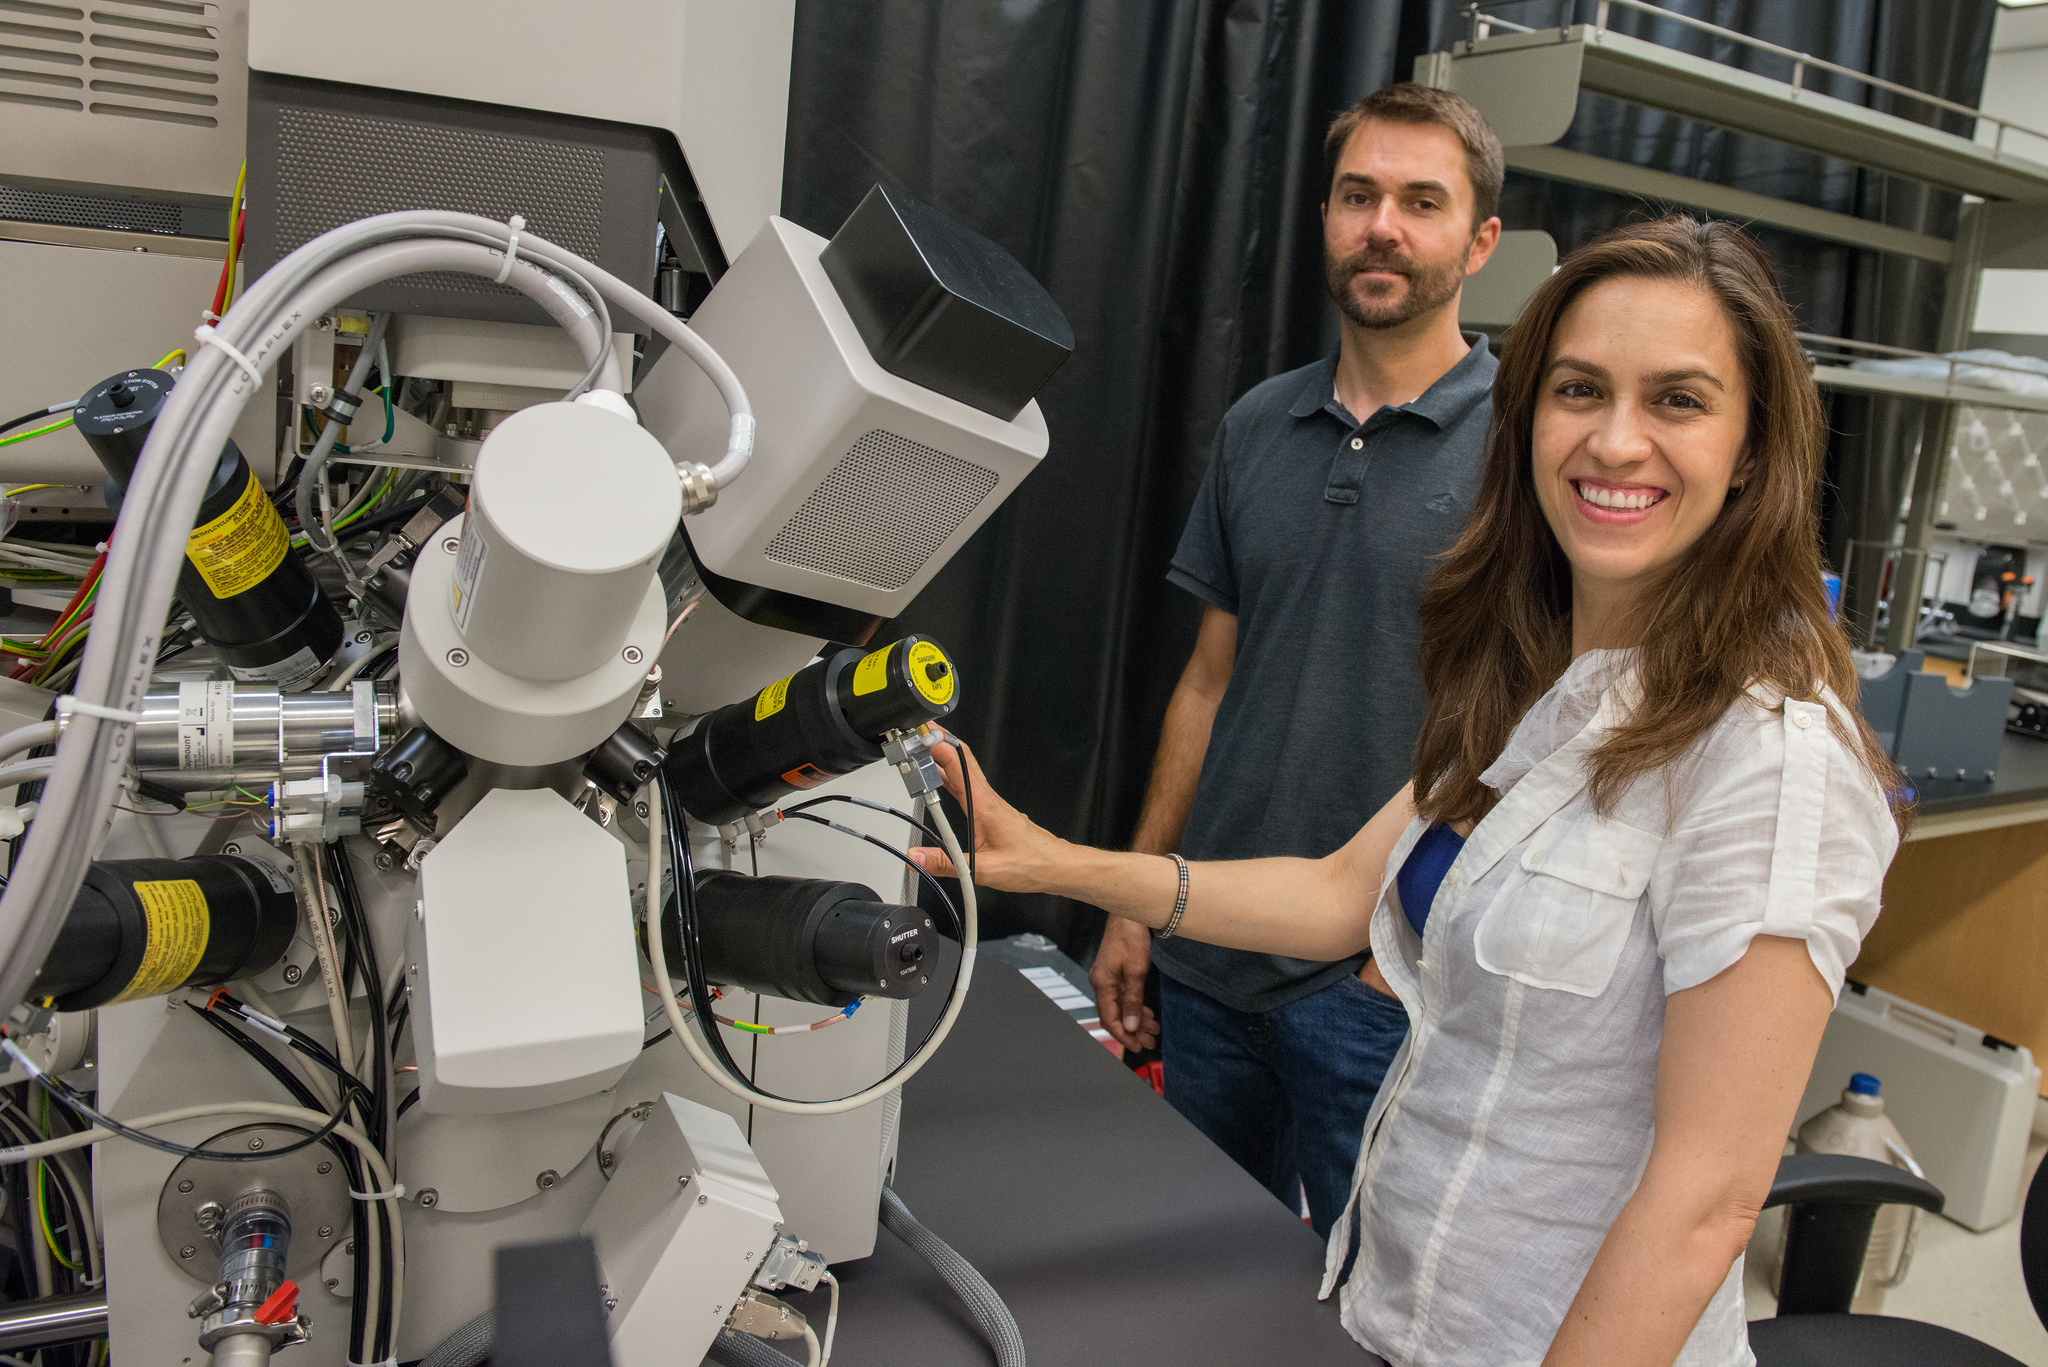 Nano3 Process Engineer Ryan Anderson and Assistant Professor of Biology Elizabeth Villa with the Scios microscrope